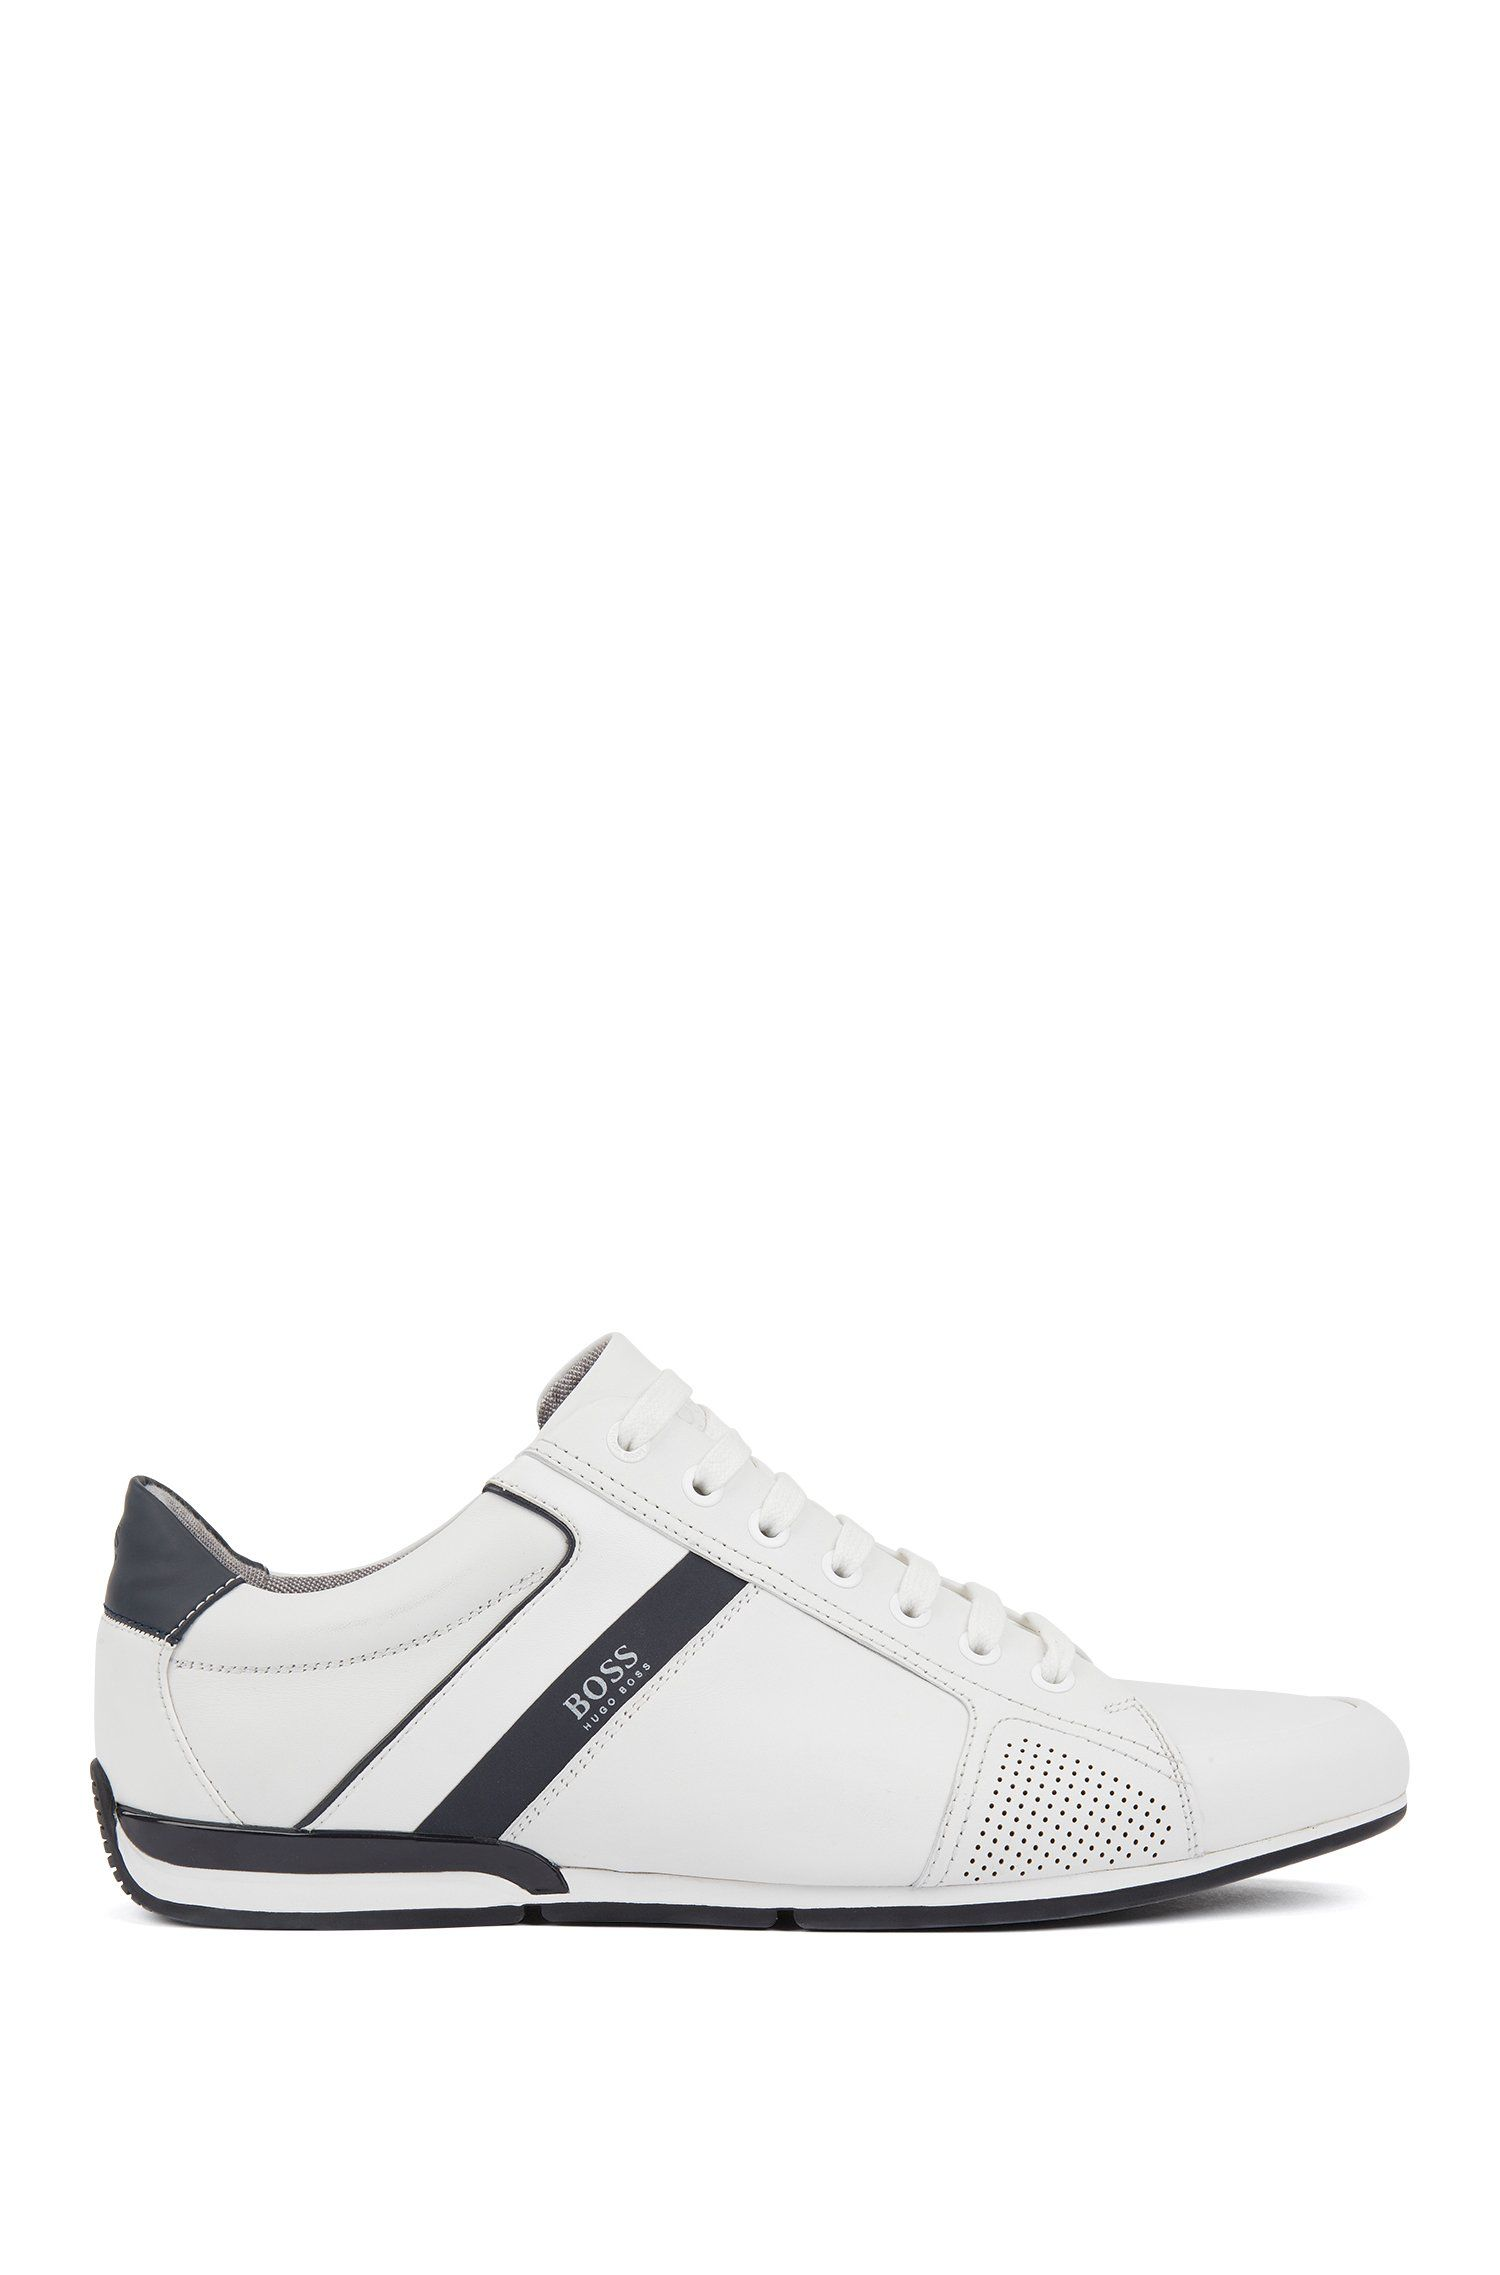 Hugo boss shoes, Leather trainers